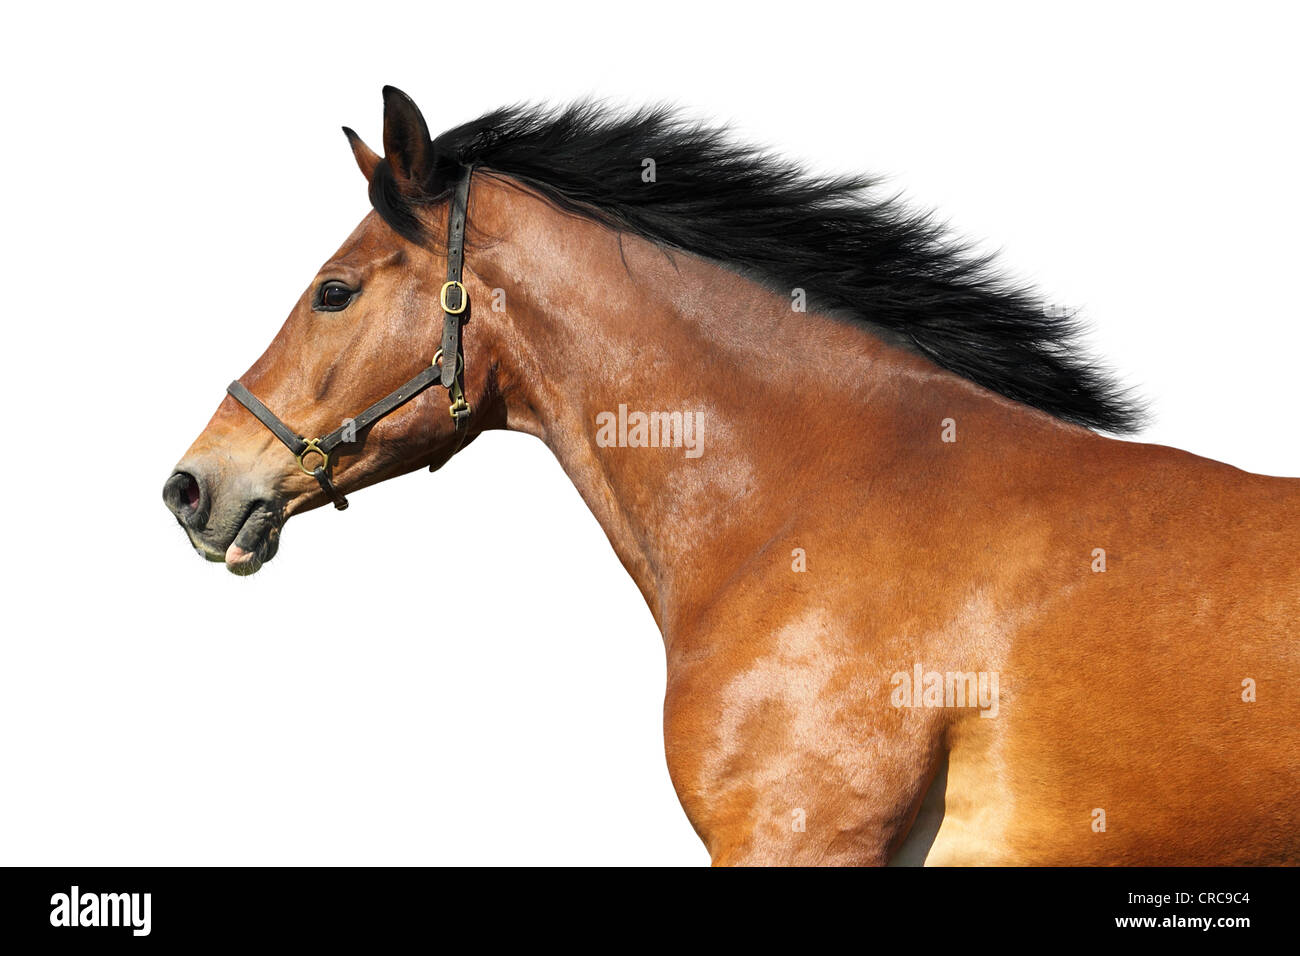 Side view of a bay horse. Isolated over white. - Stock Image